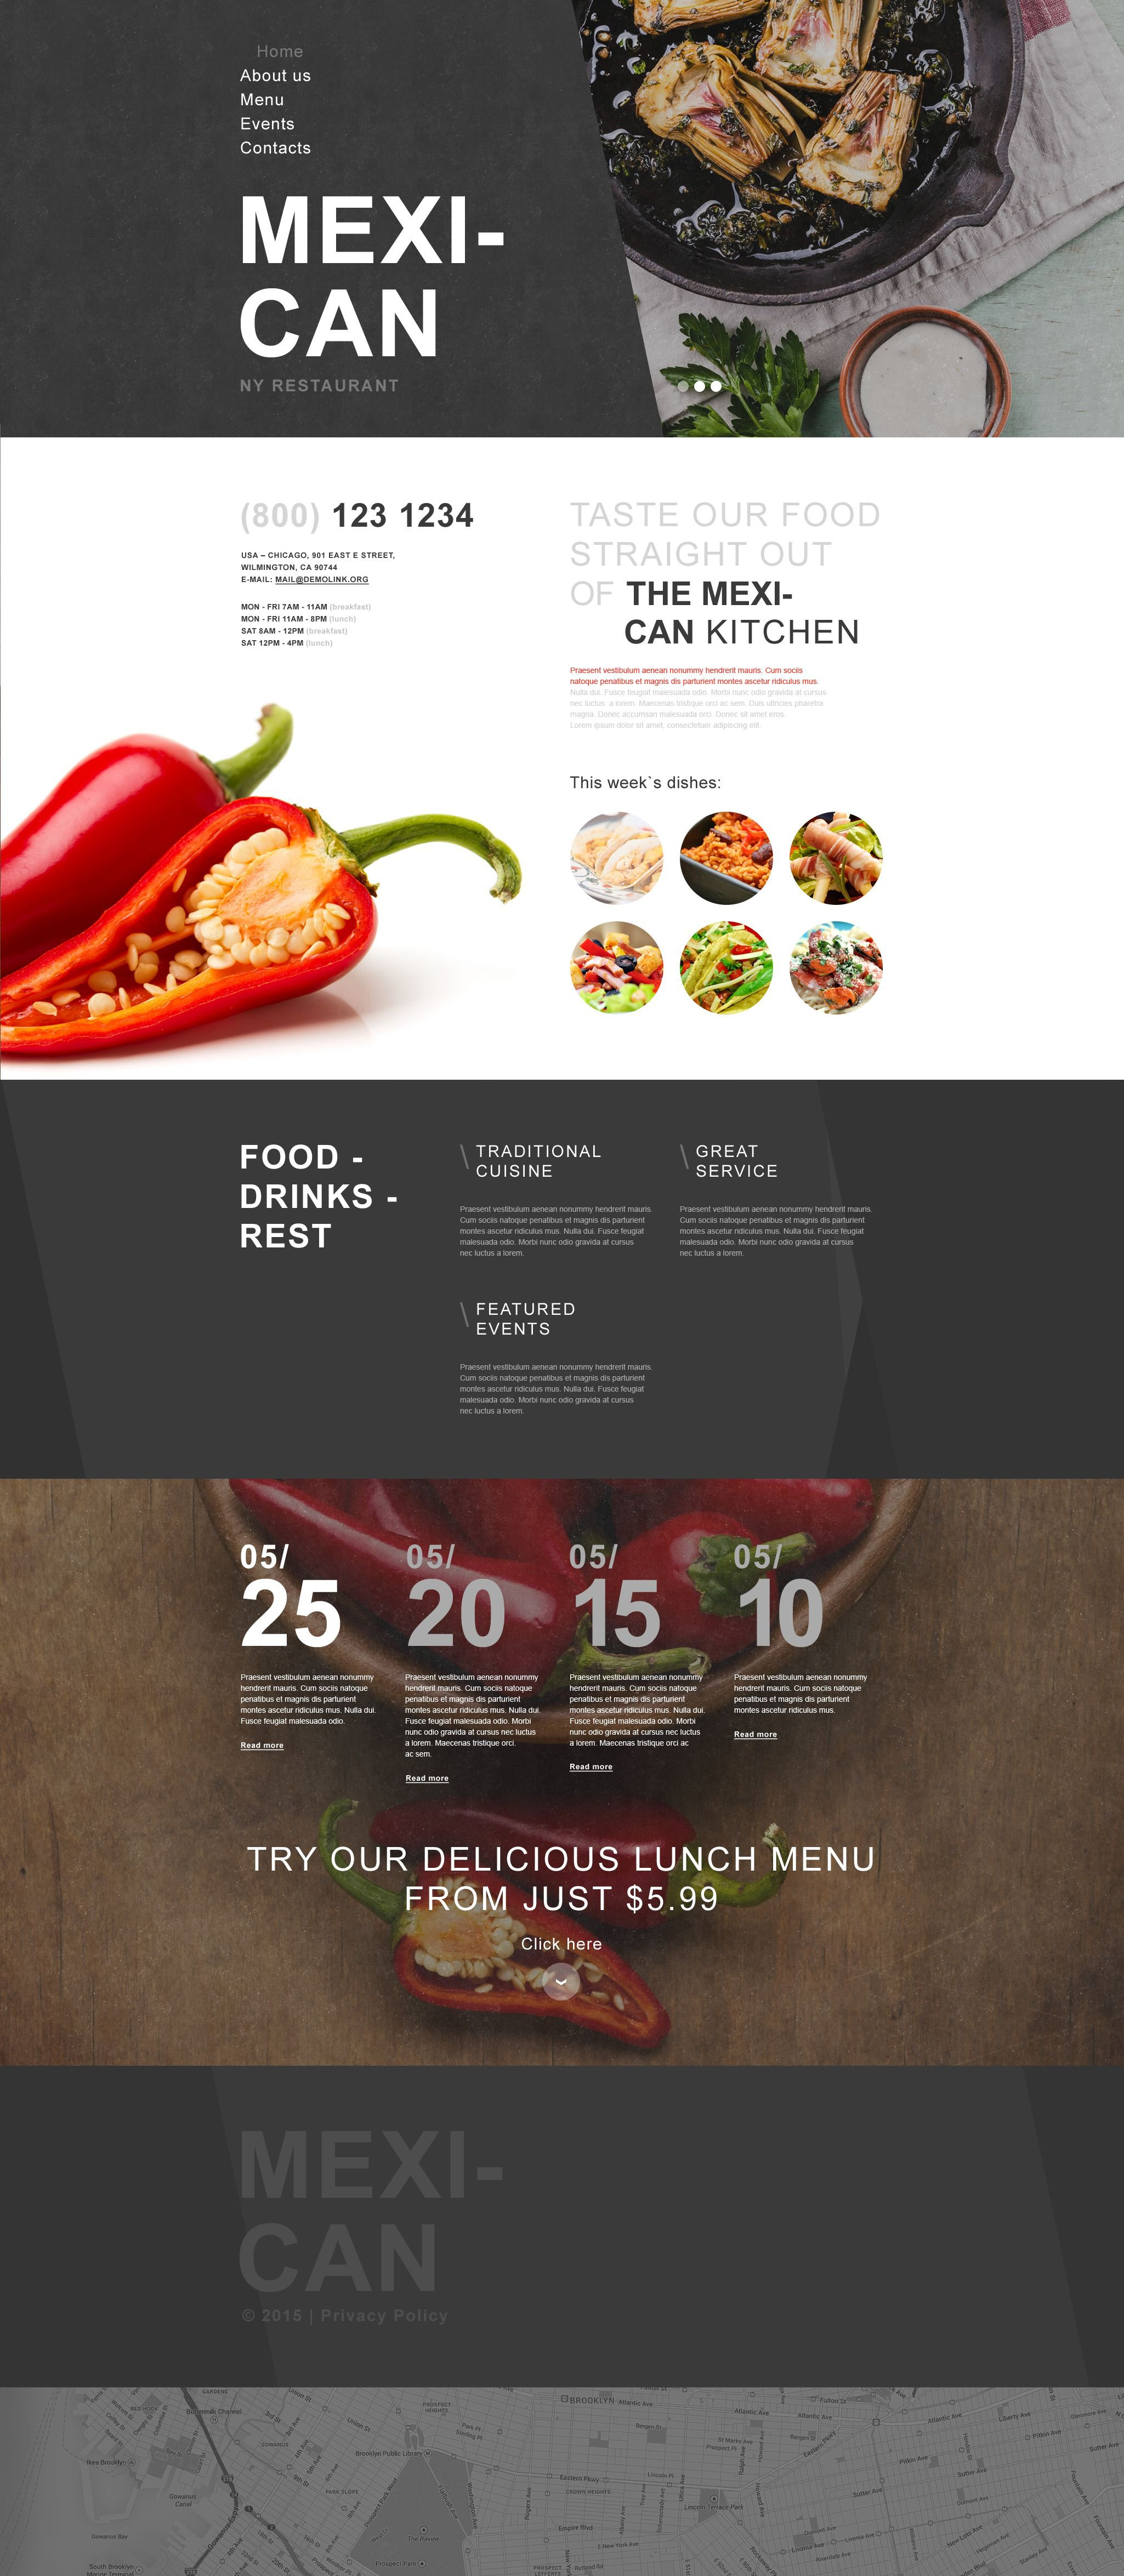 The Mexican Pepper Restaurant Muse Templates Design 53793, one of the best Muse templates of its kind (cafe and restaurant, most popular), also known as mexican pepper restaurant Muse template, food Muse template, cuisine Muse template, taco Muse template, tequila Muse template, nacho Muse template, tortilla Muse template, burrito Muse template, enchilada Muse template, drink Muse template, menu Muse template, waiter Muse template, dish Muse template, wine Muse template, taste Muse template, reservation Muse template, specials Muse template, recipe Muse template, launch Muse template, dinner Muse template, testimonials Muse template, offers Muse template, kitchen Muse template, cookbook Muse template, vegetarian Muse template, cocktail Muse template, beverage Muse template, specials Muse template, reservation Muse template, delivery and related with mexican pepper restaurant, food, cuisine, taco, tequila, nacho, tortilla, burrito, enchilada, drink, menu, waiter, dish, wine, taste, reservation, specials, recipe, launch, dinner, testimonials, offers, kitchen, cookbook, vegetarian, cocktail, beverage, specials, reservation, delivery, etc.